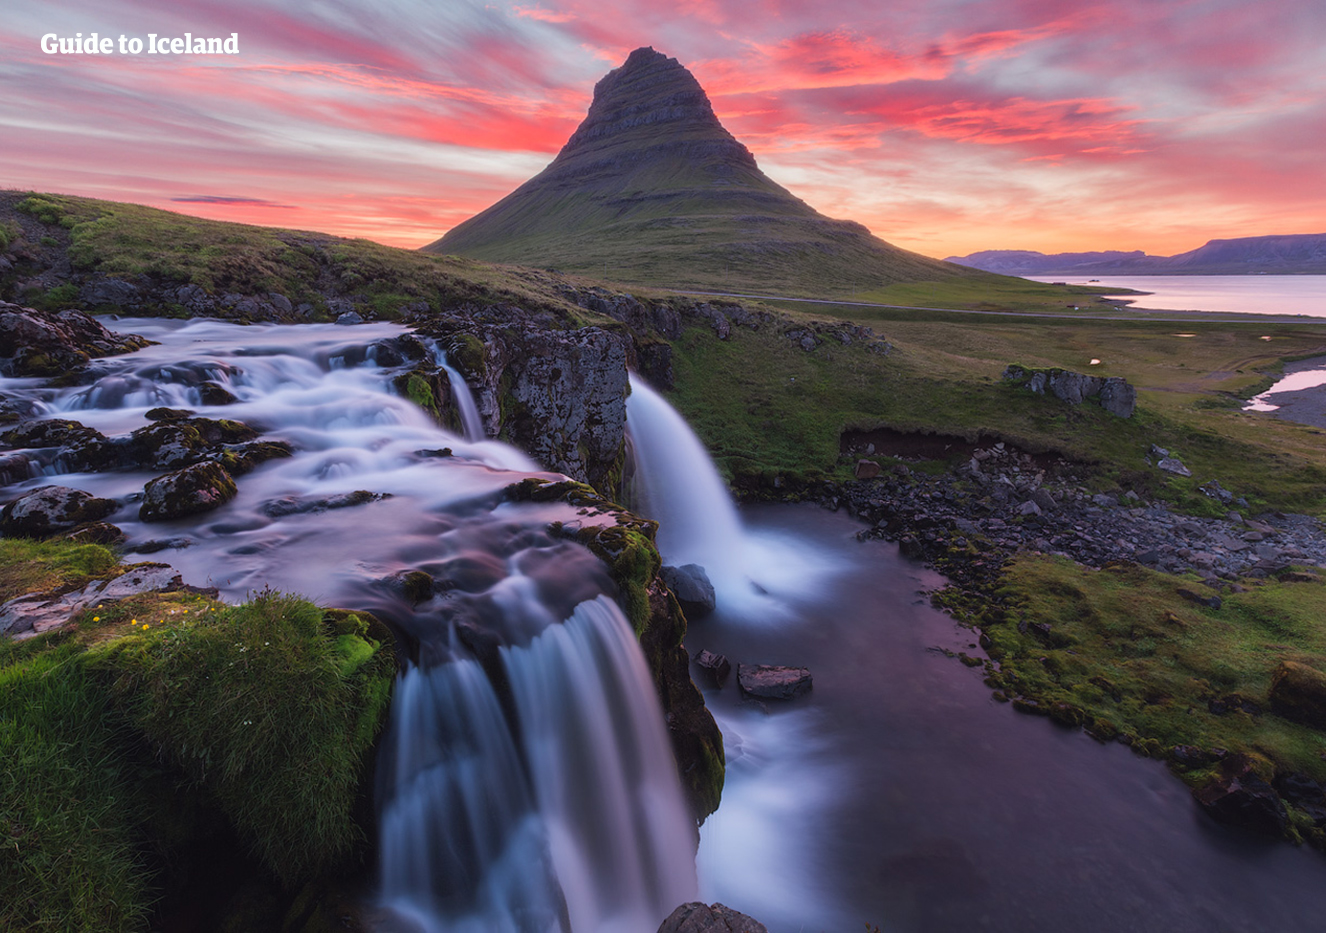 Kirkjufell Mountain in Snaefellsnes (Western Iceland) was featured in HBO's Game of Thrones